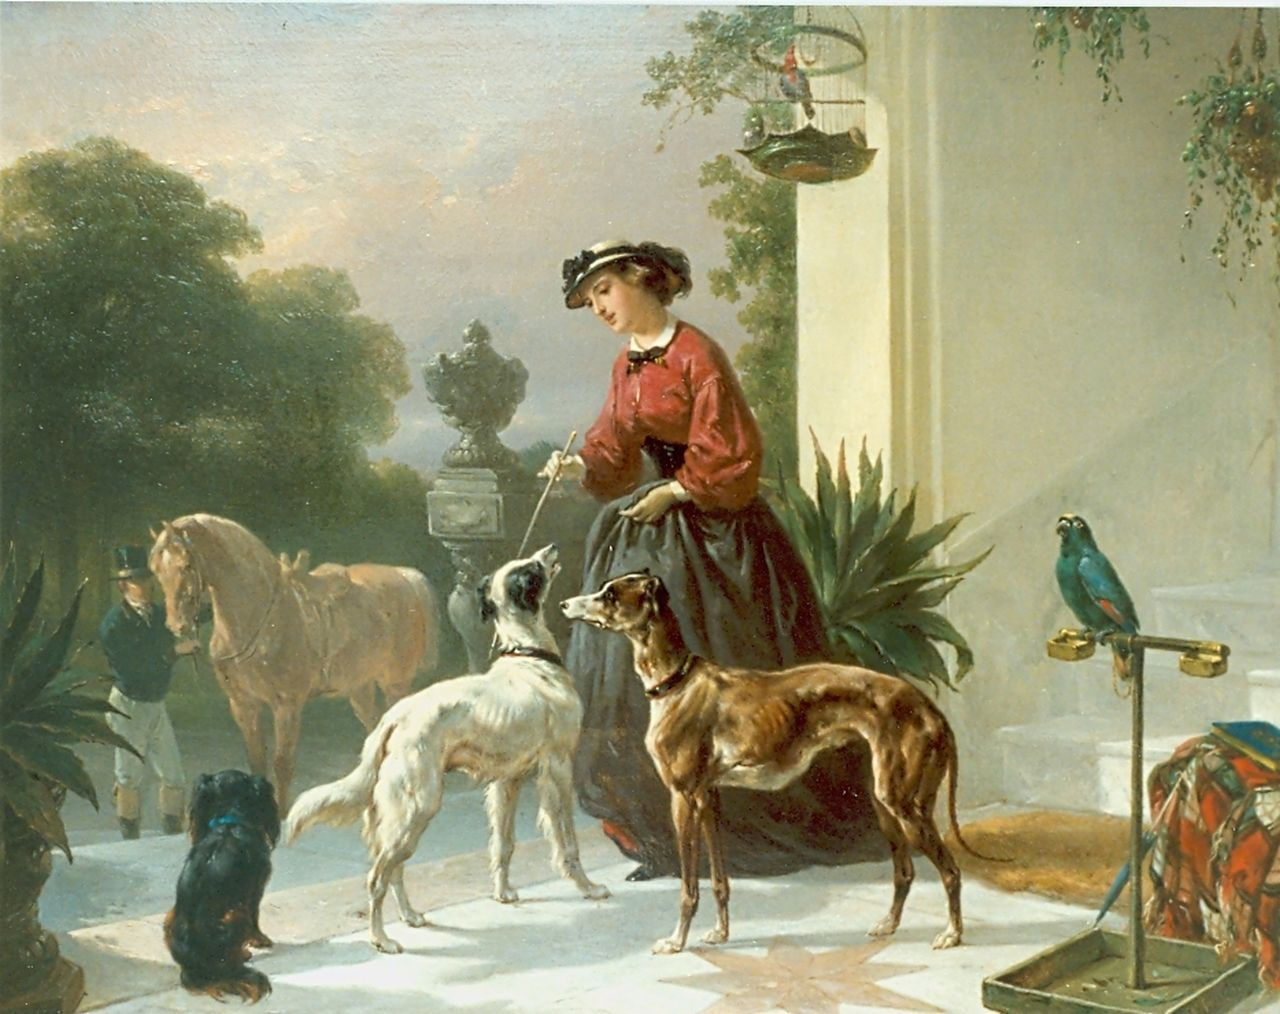 Verschuur W.  | Wouterus Verschuur, Amazone, oil on panel 34.0 x 44.2 cm, signed l.r.